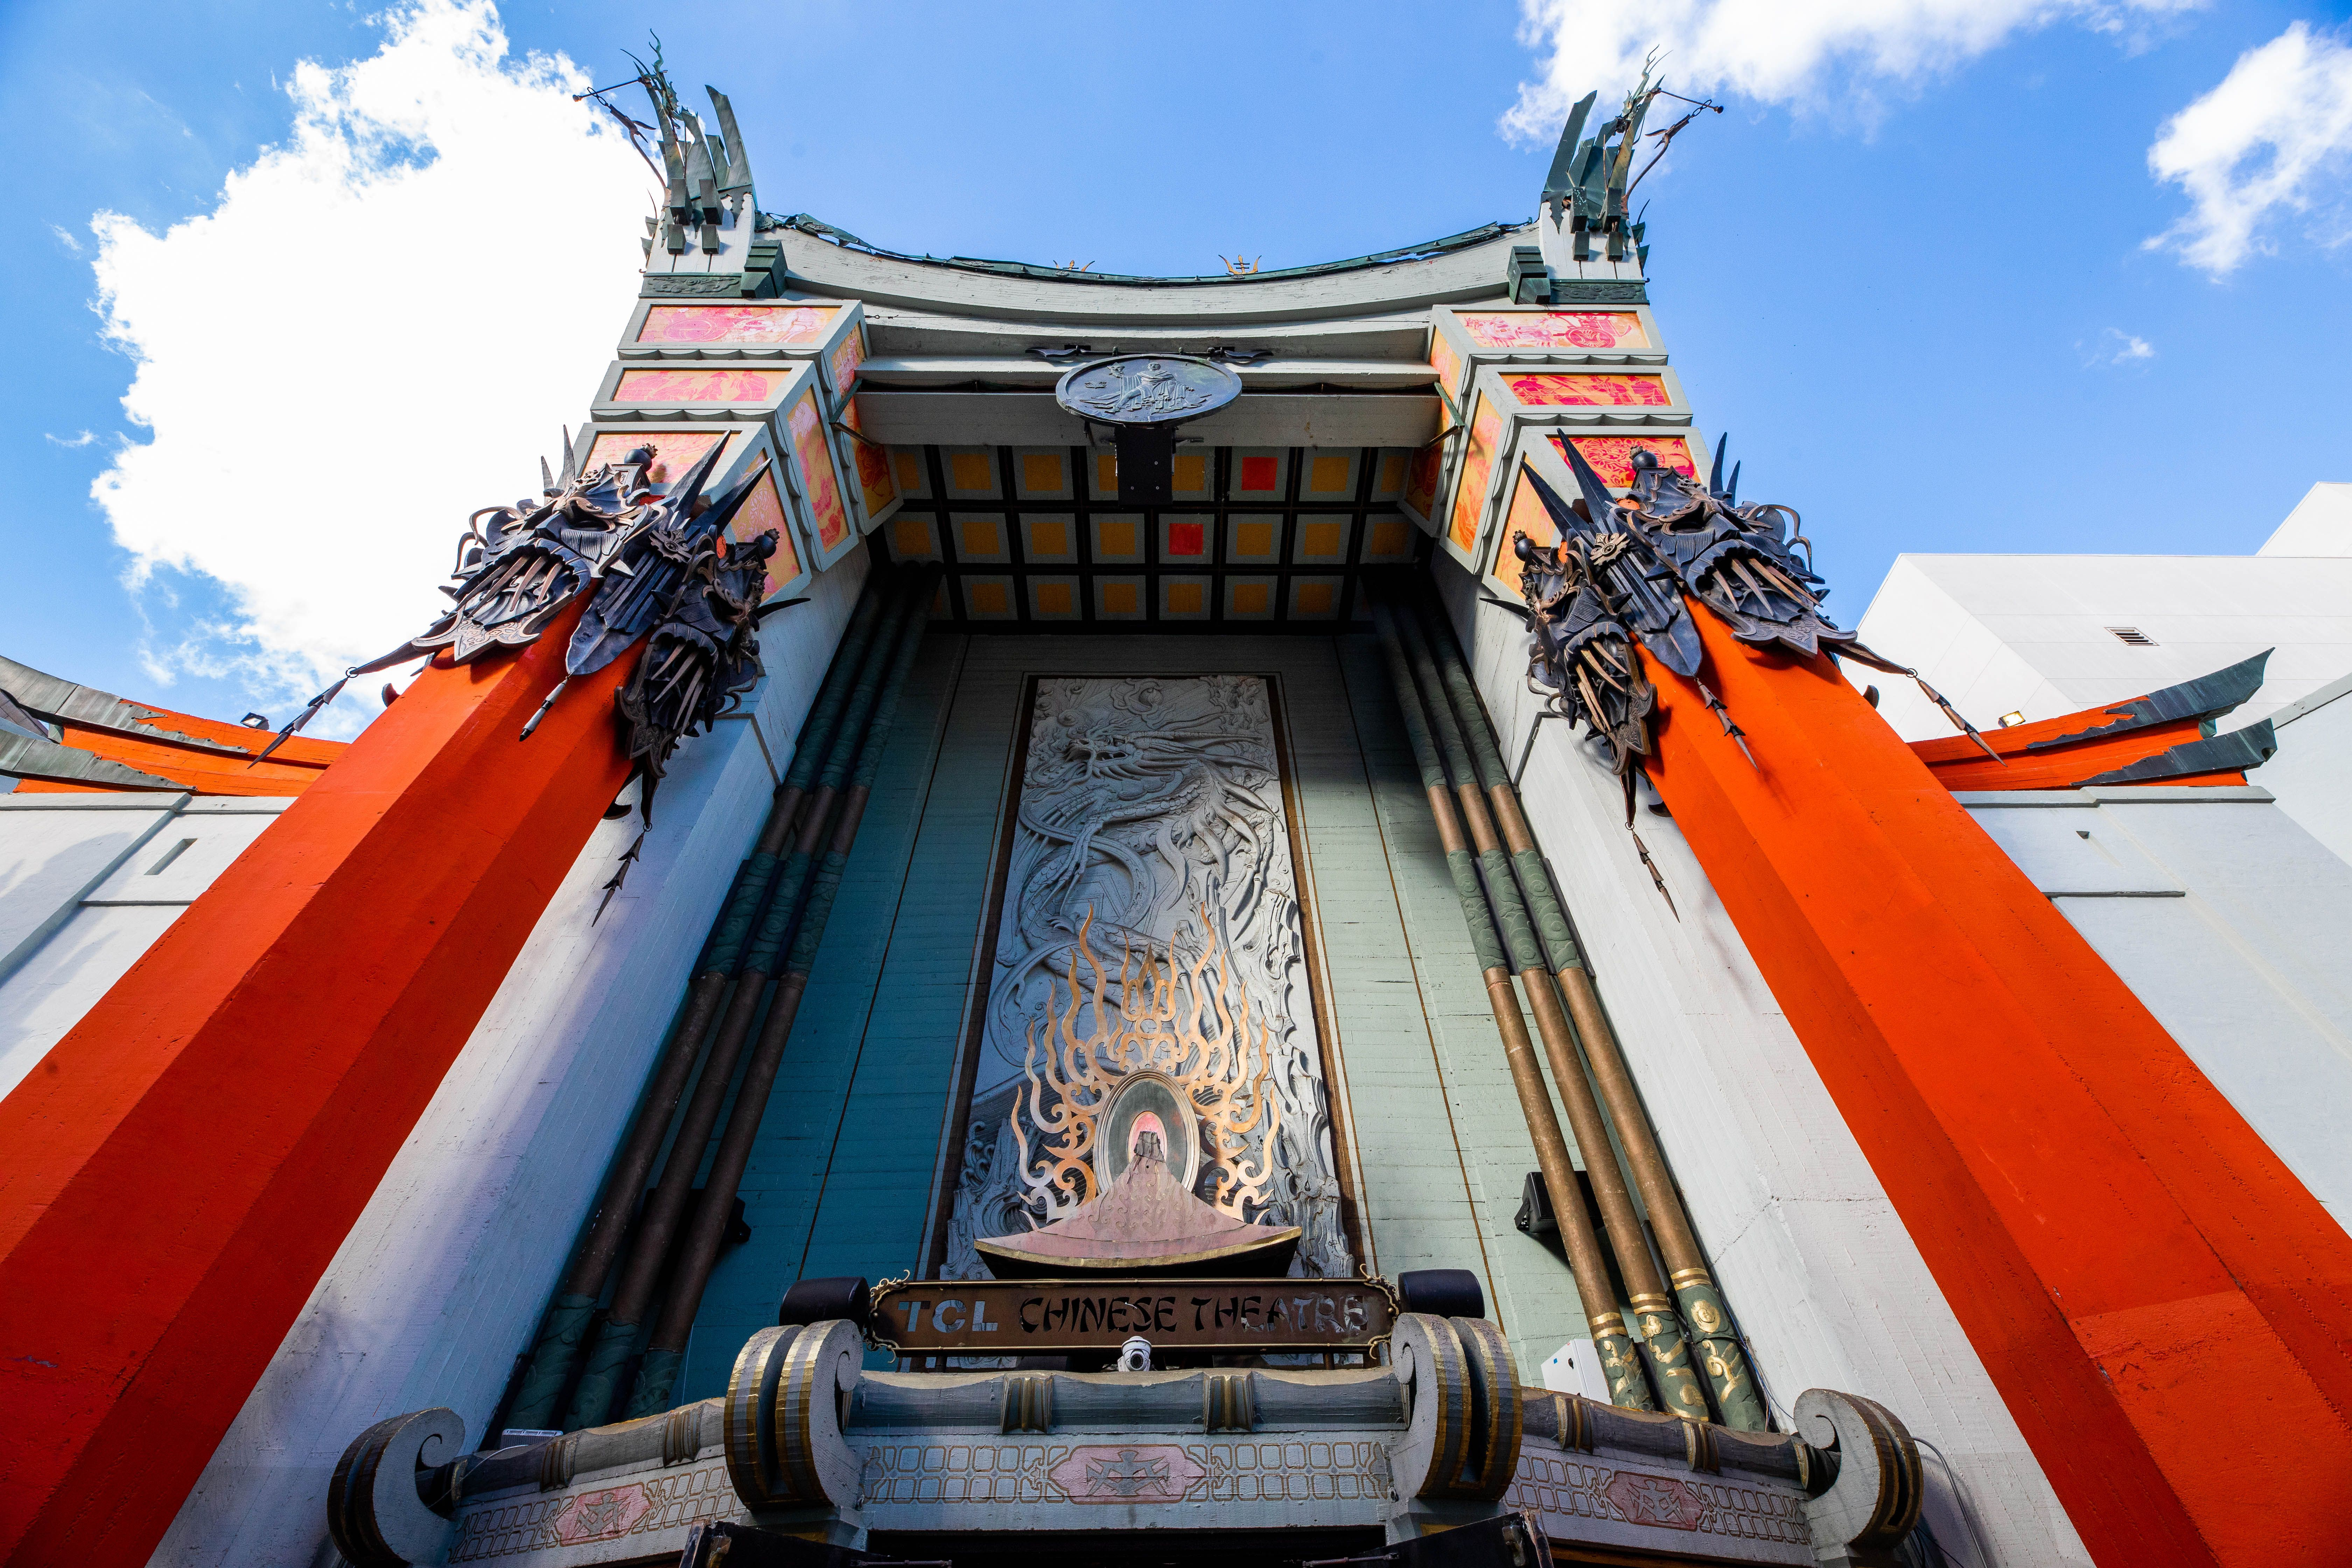 Outside the Grauman's Chinese Theatre